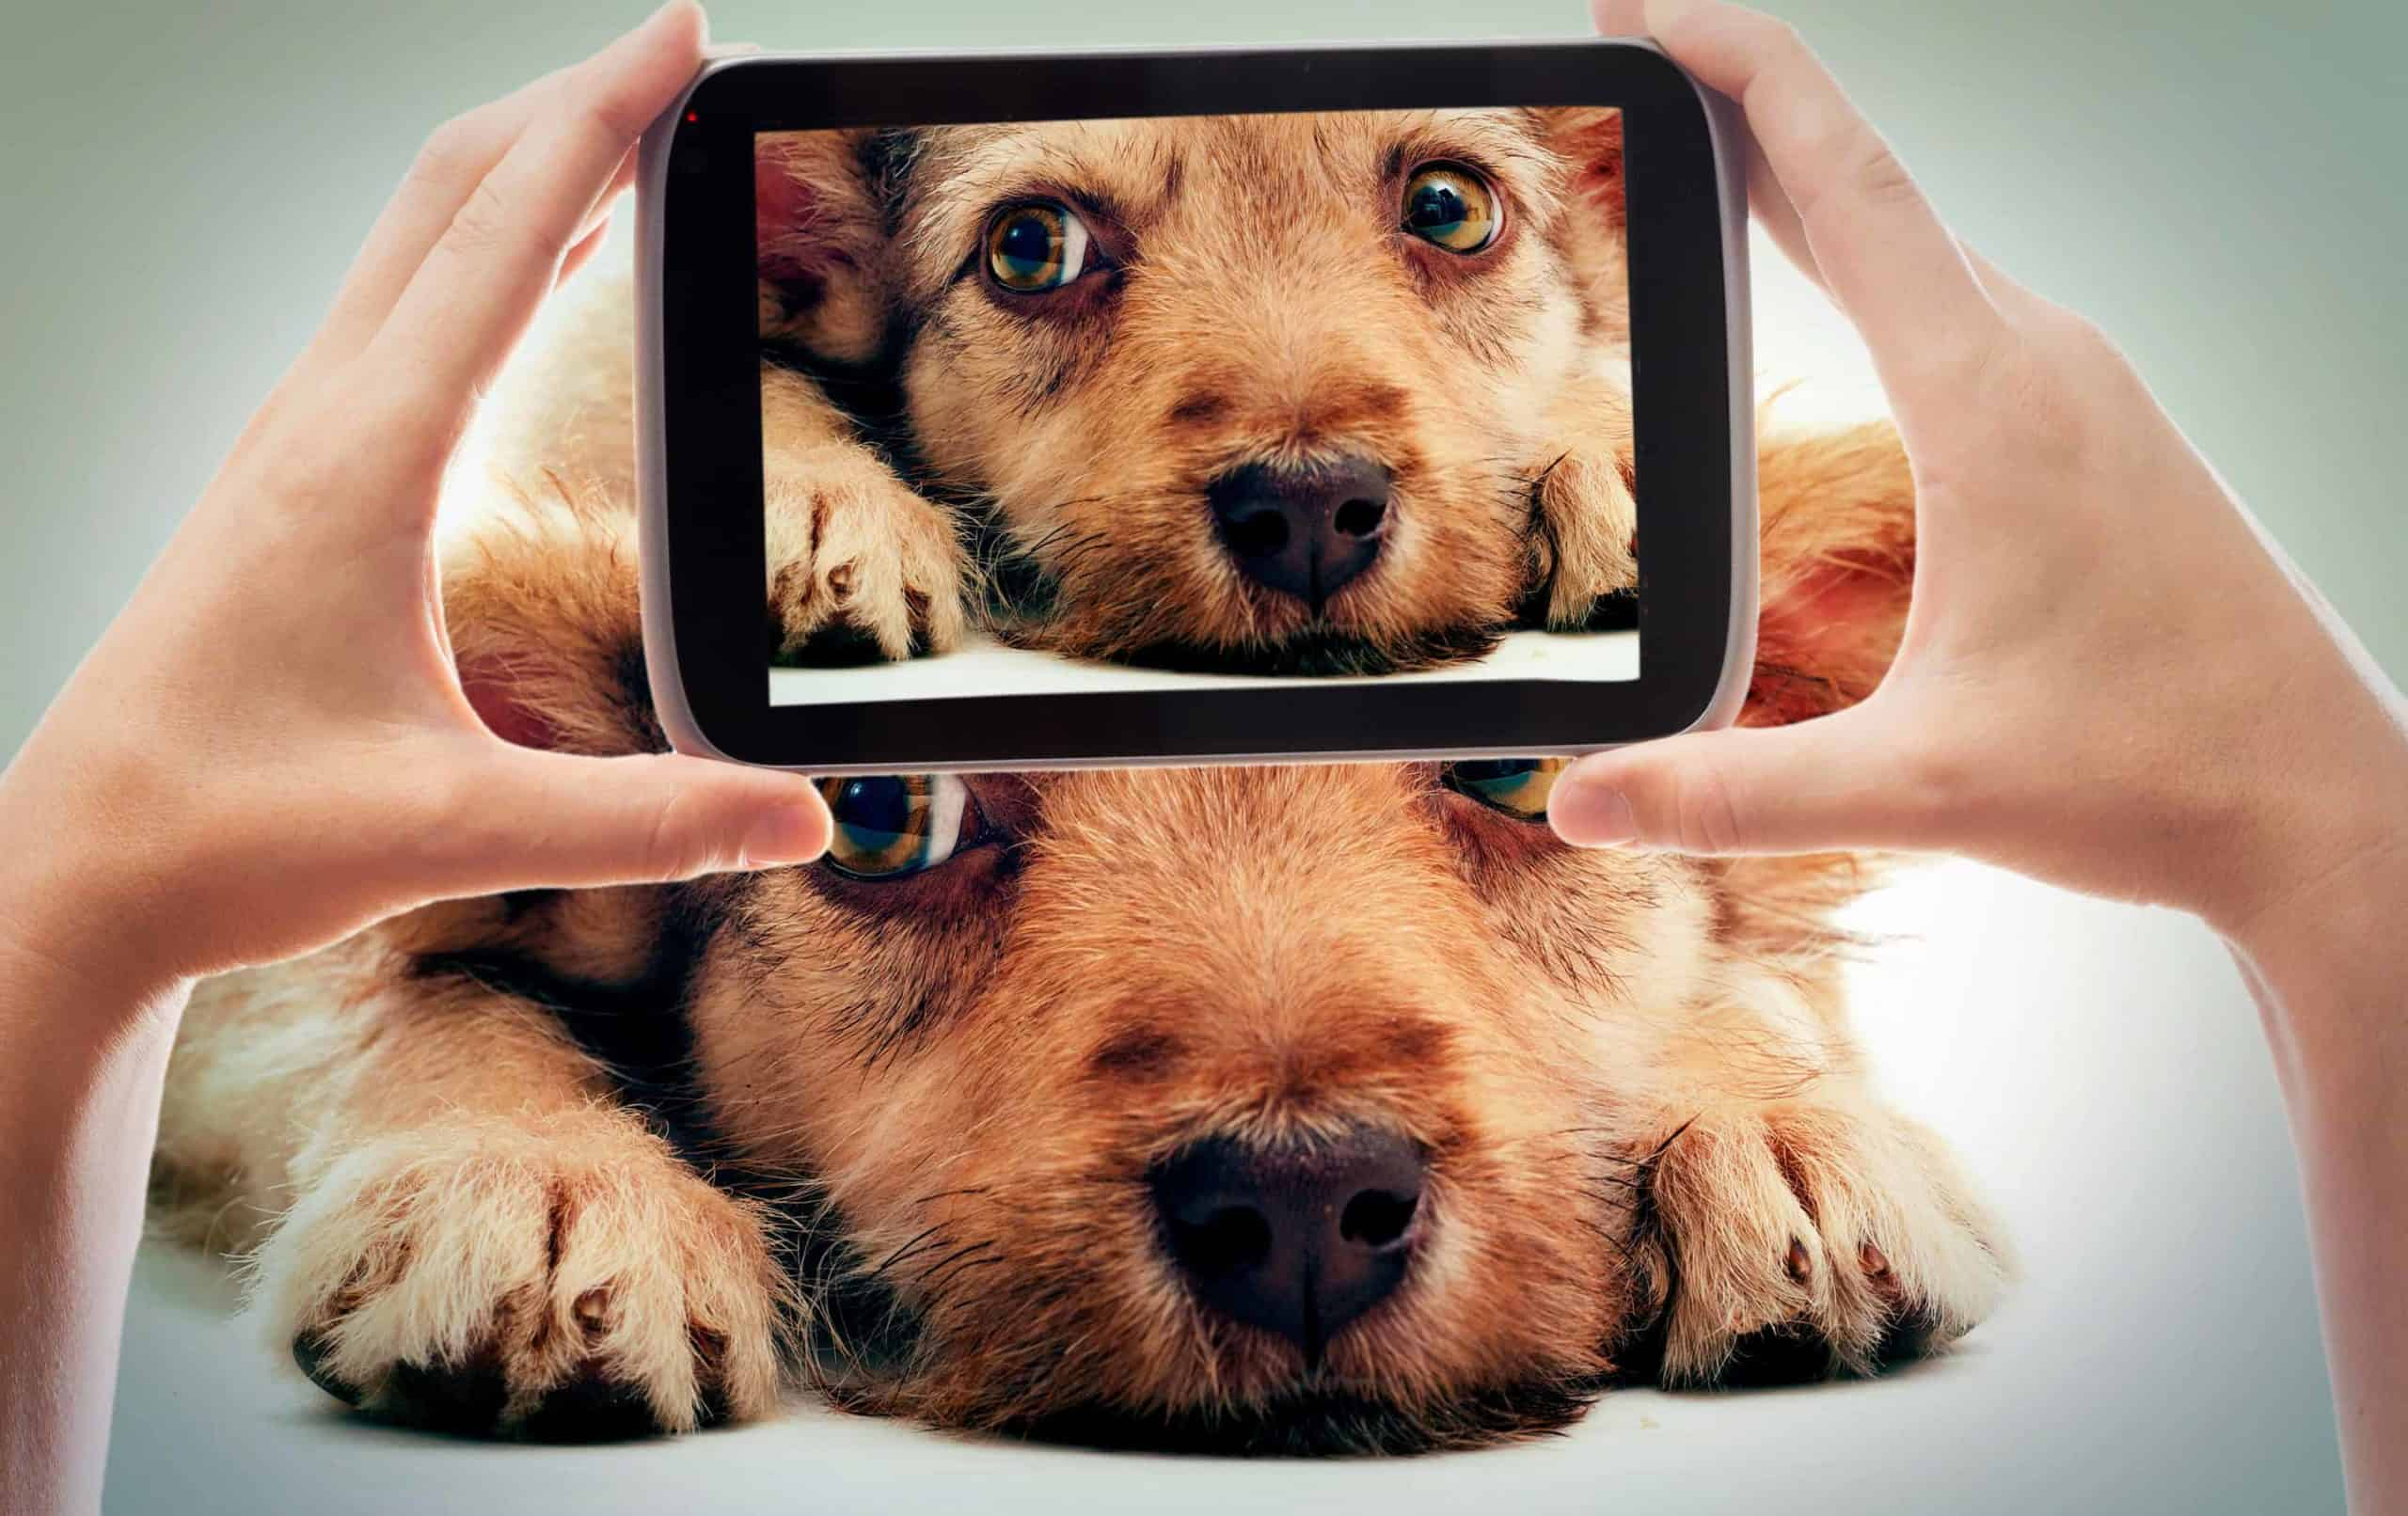 Owner takes photo of dog. Gaining popularity on social media like Instagram, Facebook using your dog's charisma is much easier because the content is genuine.